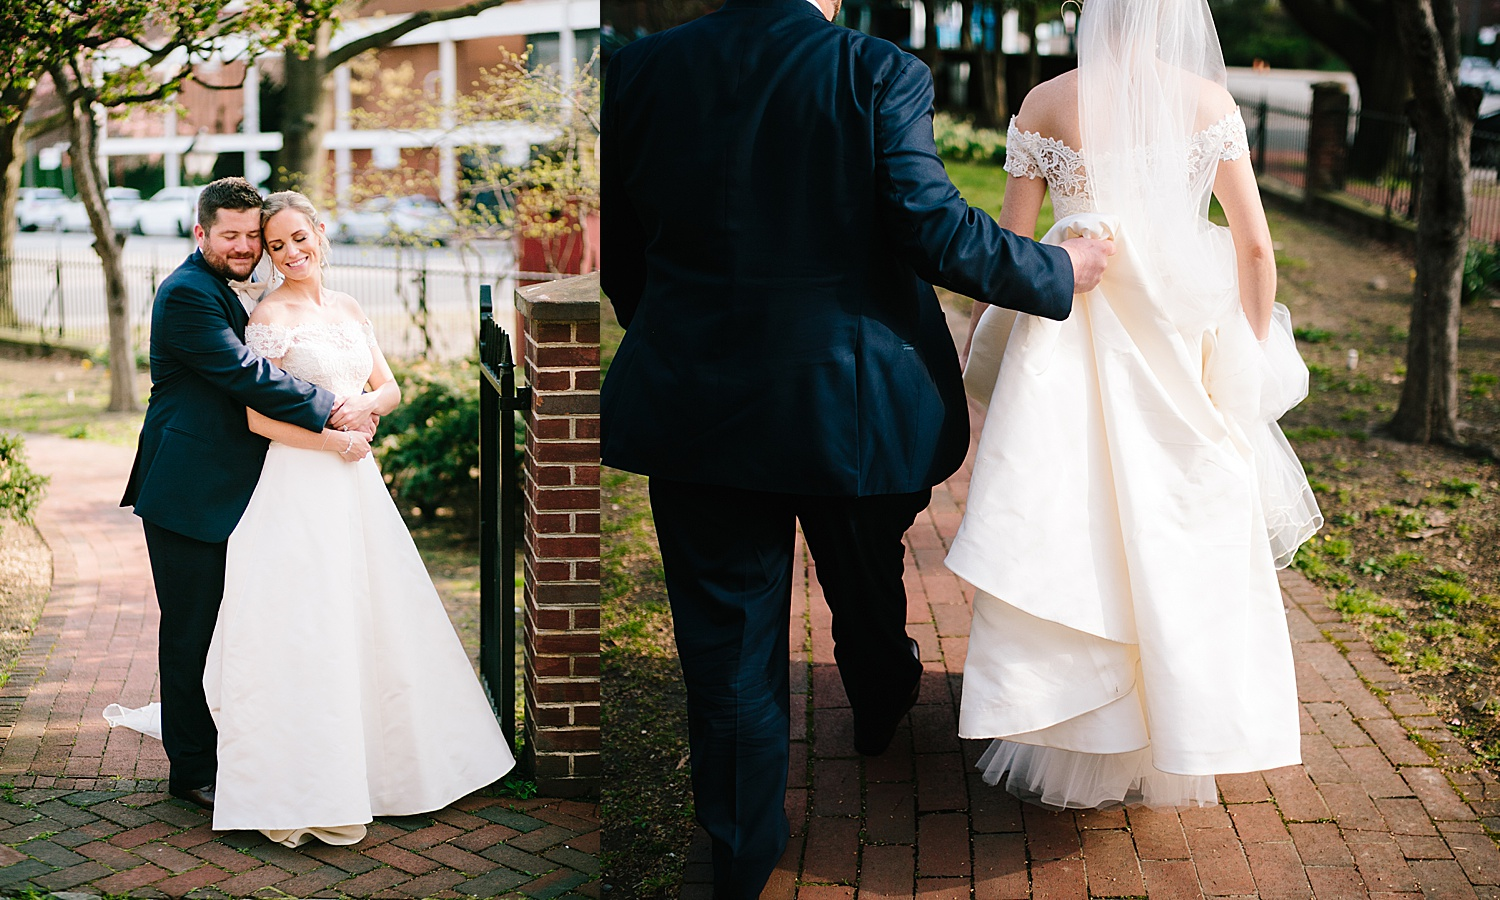 courtneyryan_sheraton_societyhill_philadelphia_merchantsexchange_wedding_image075.jpg